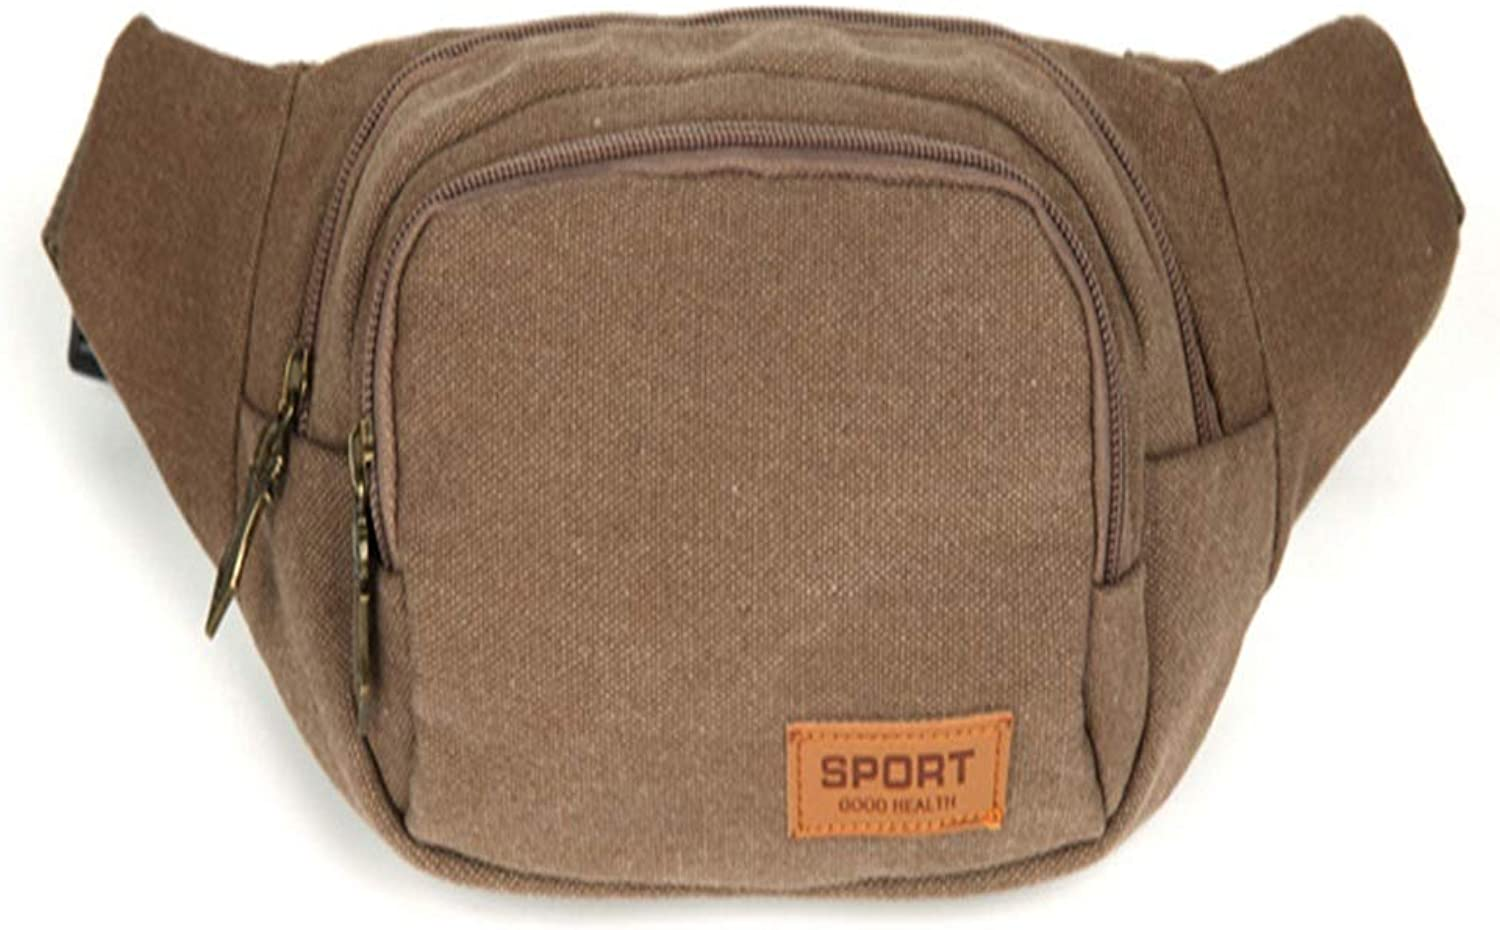 Outdoor Fanny Pack Fanny Pack BuyAgain Quick Release Buckle Travel Sport Waist Fanny Pack Bag Khaki Canvas Fanny Pack Travel Neck Pouch Hiking Camping Fishing Waist Bag